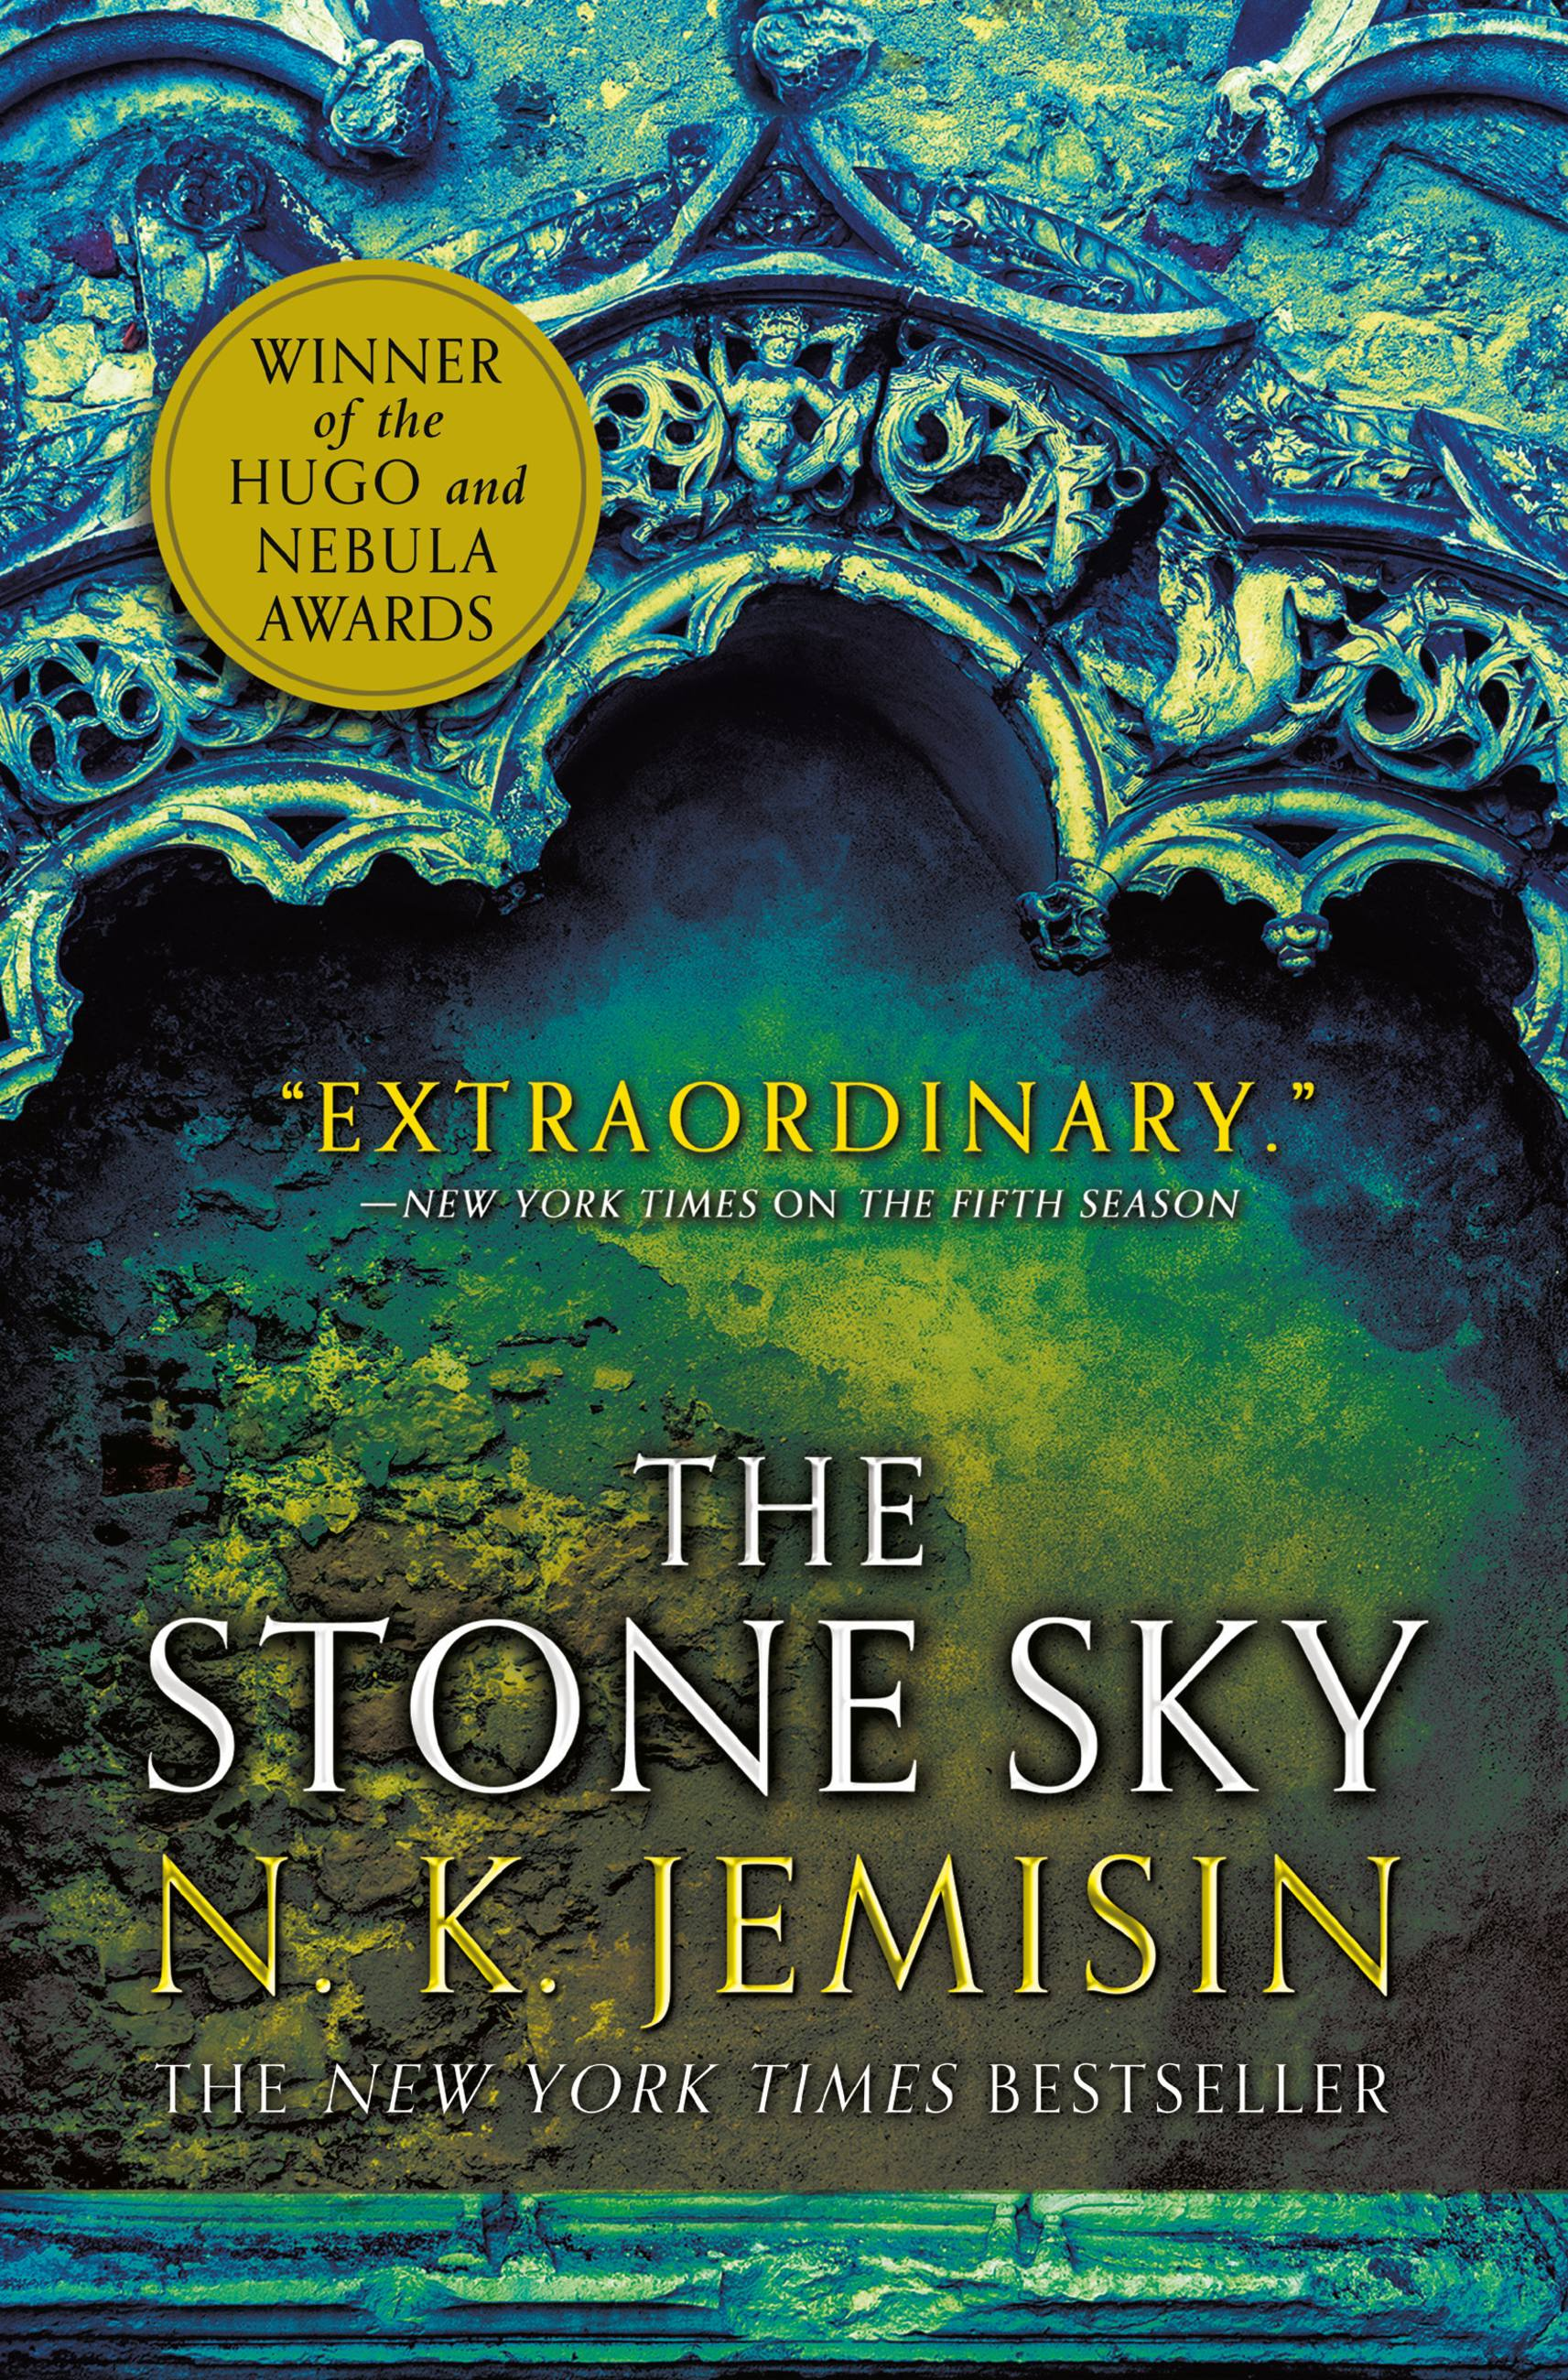 The Stone Sky [electronic resource]